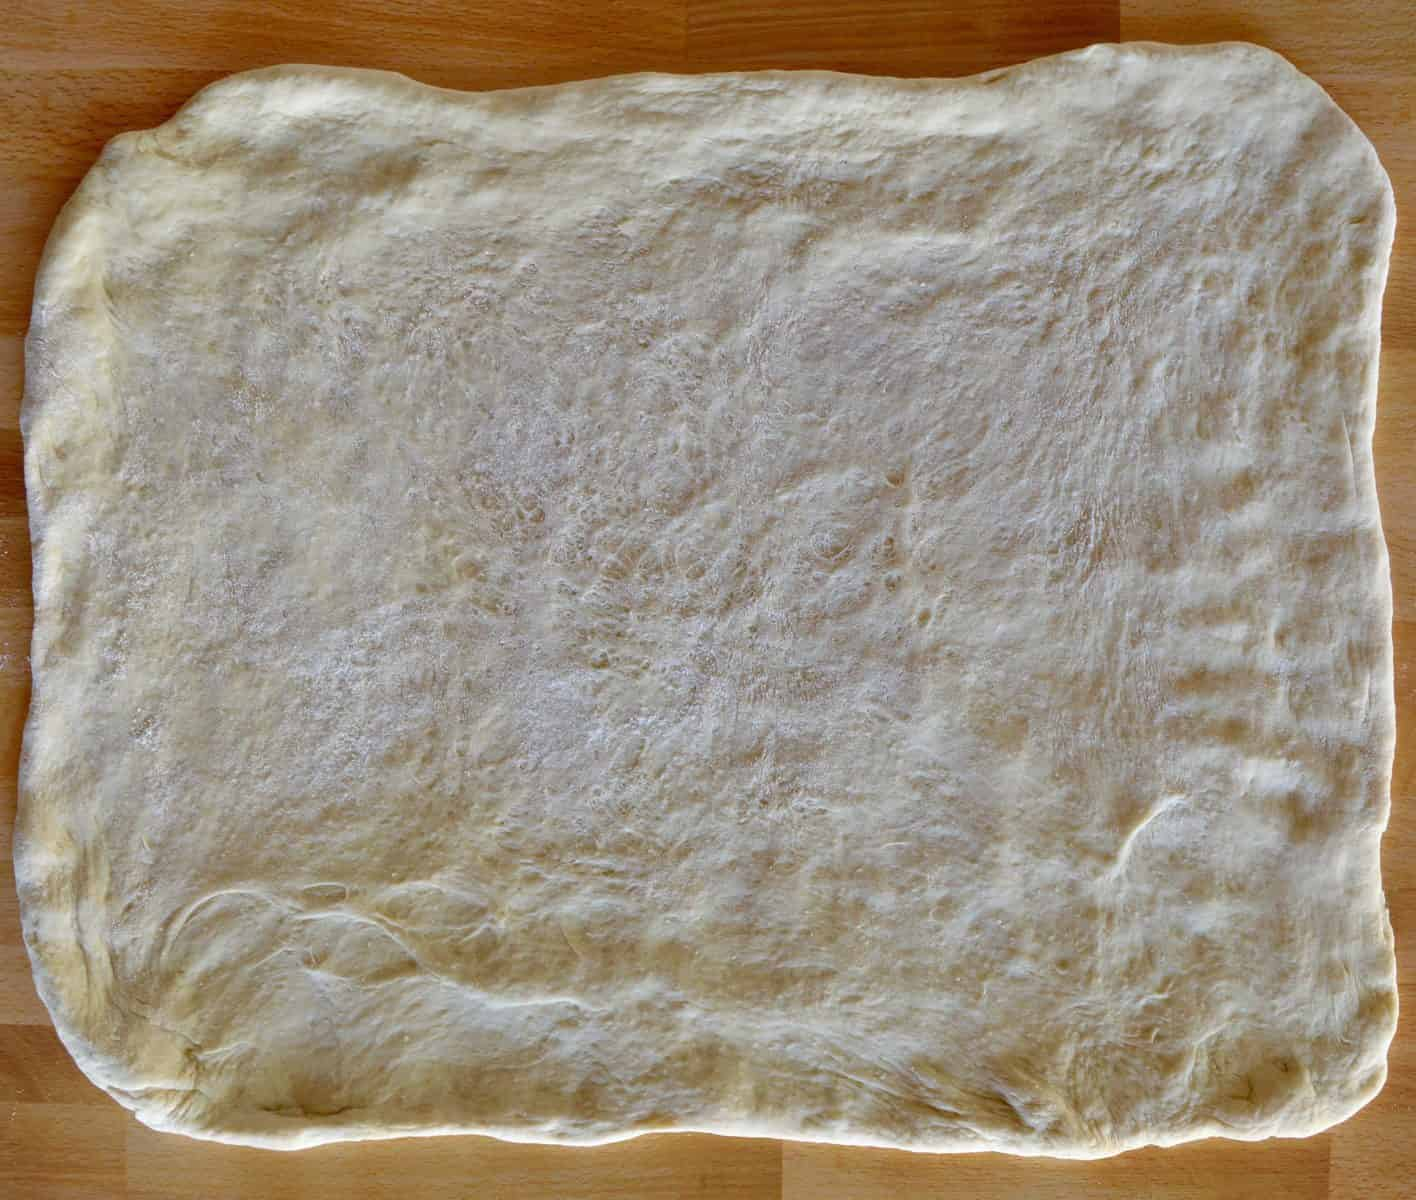 Stromboli dough rolled out into large rectangle.